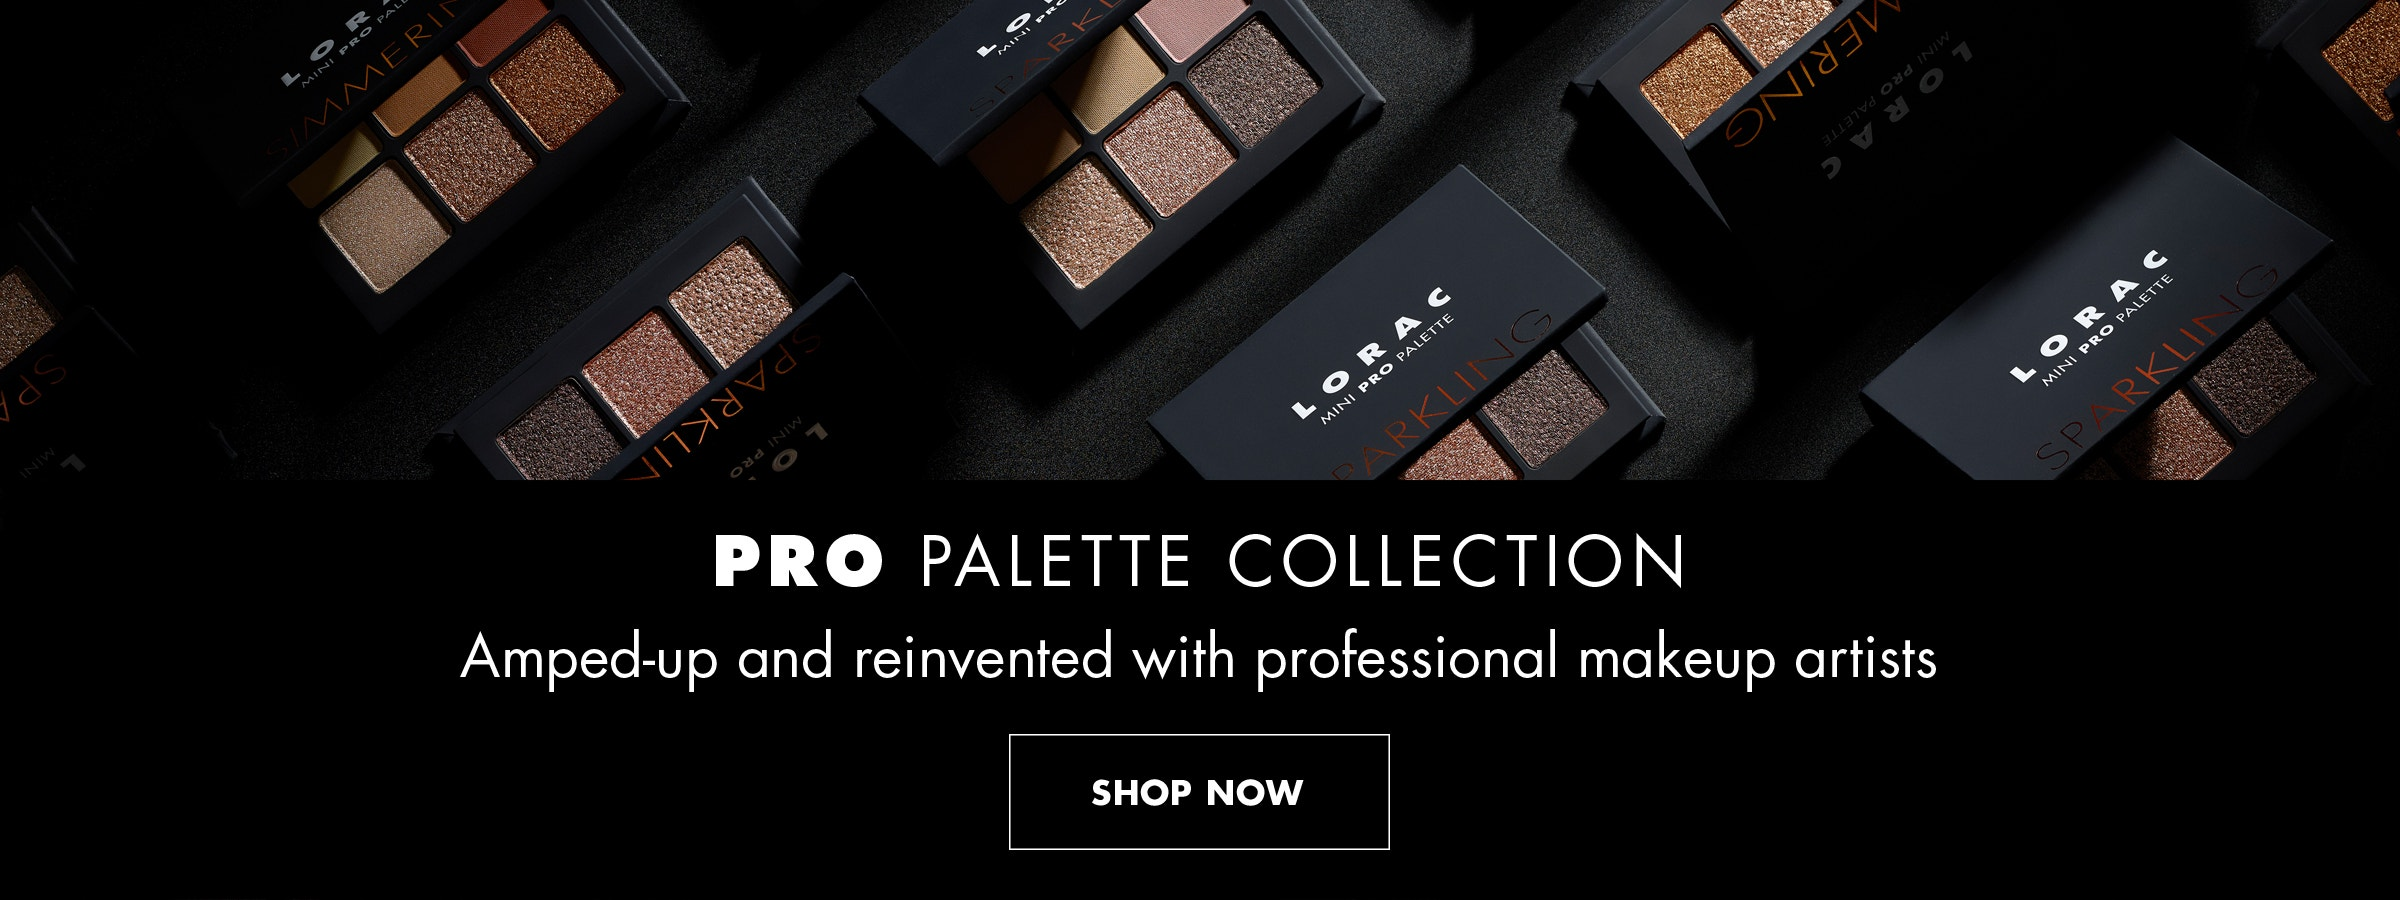 LORAC | PRO Palette Collection Amped-up and reinvented with professional makeup artists | SHOP NOW